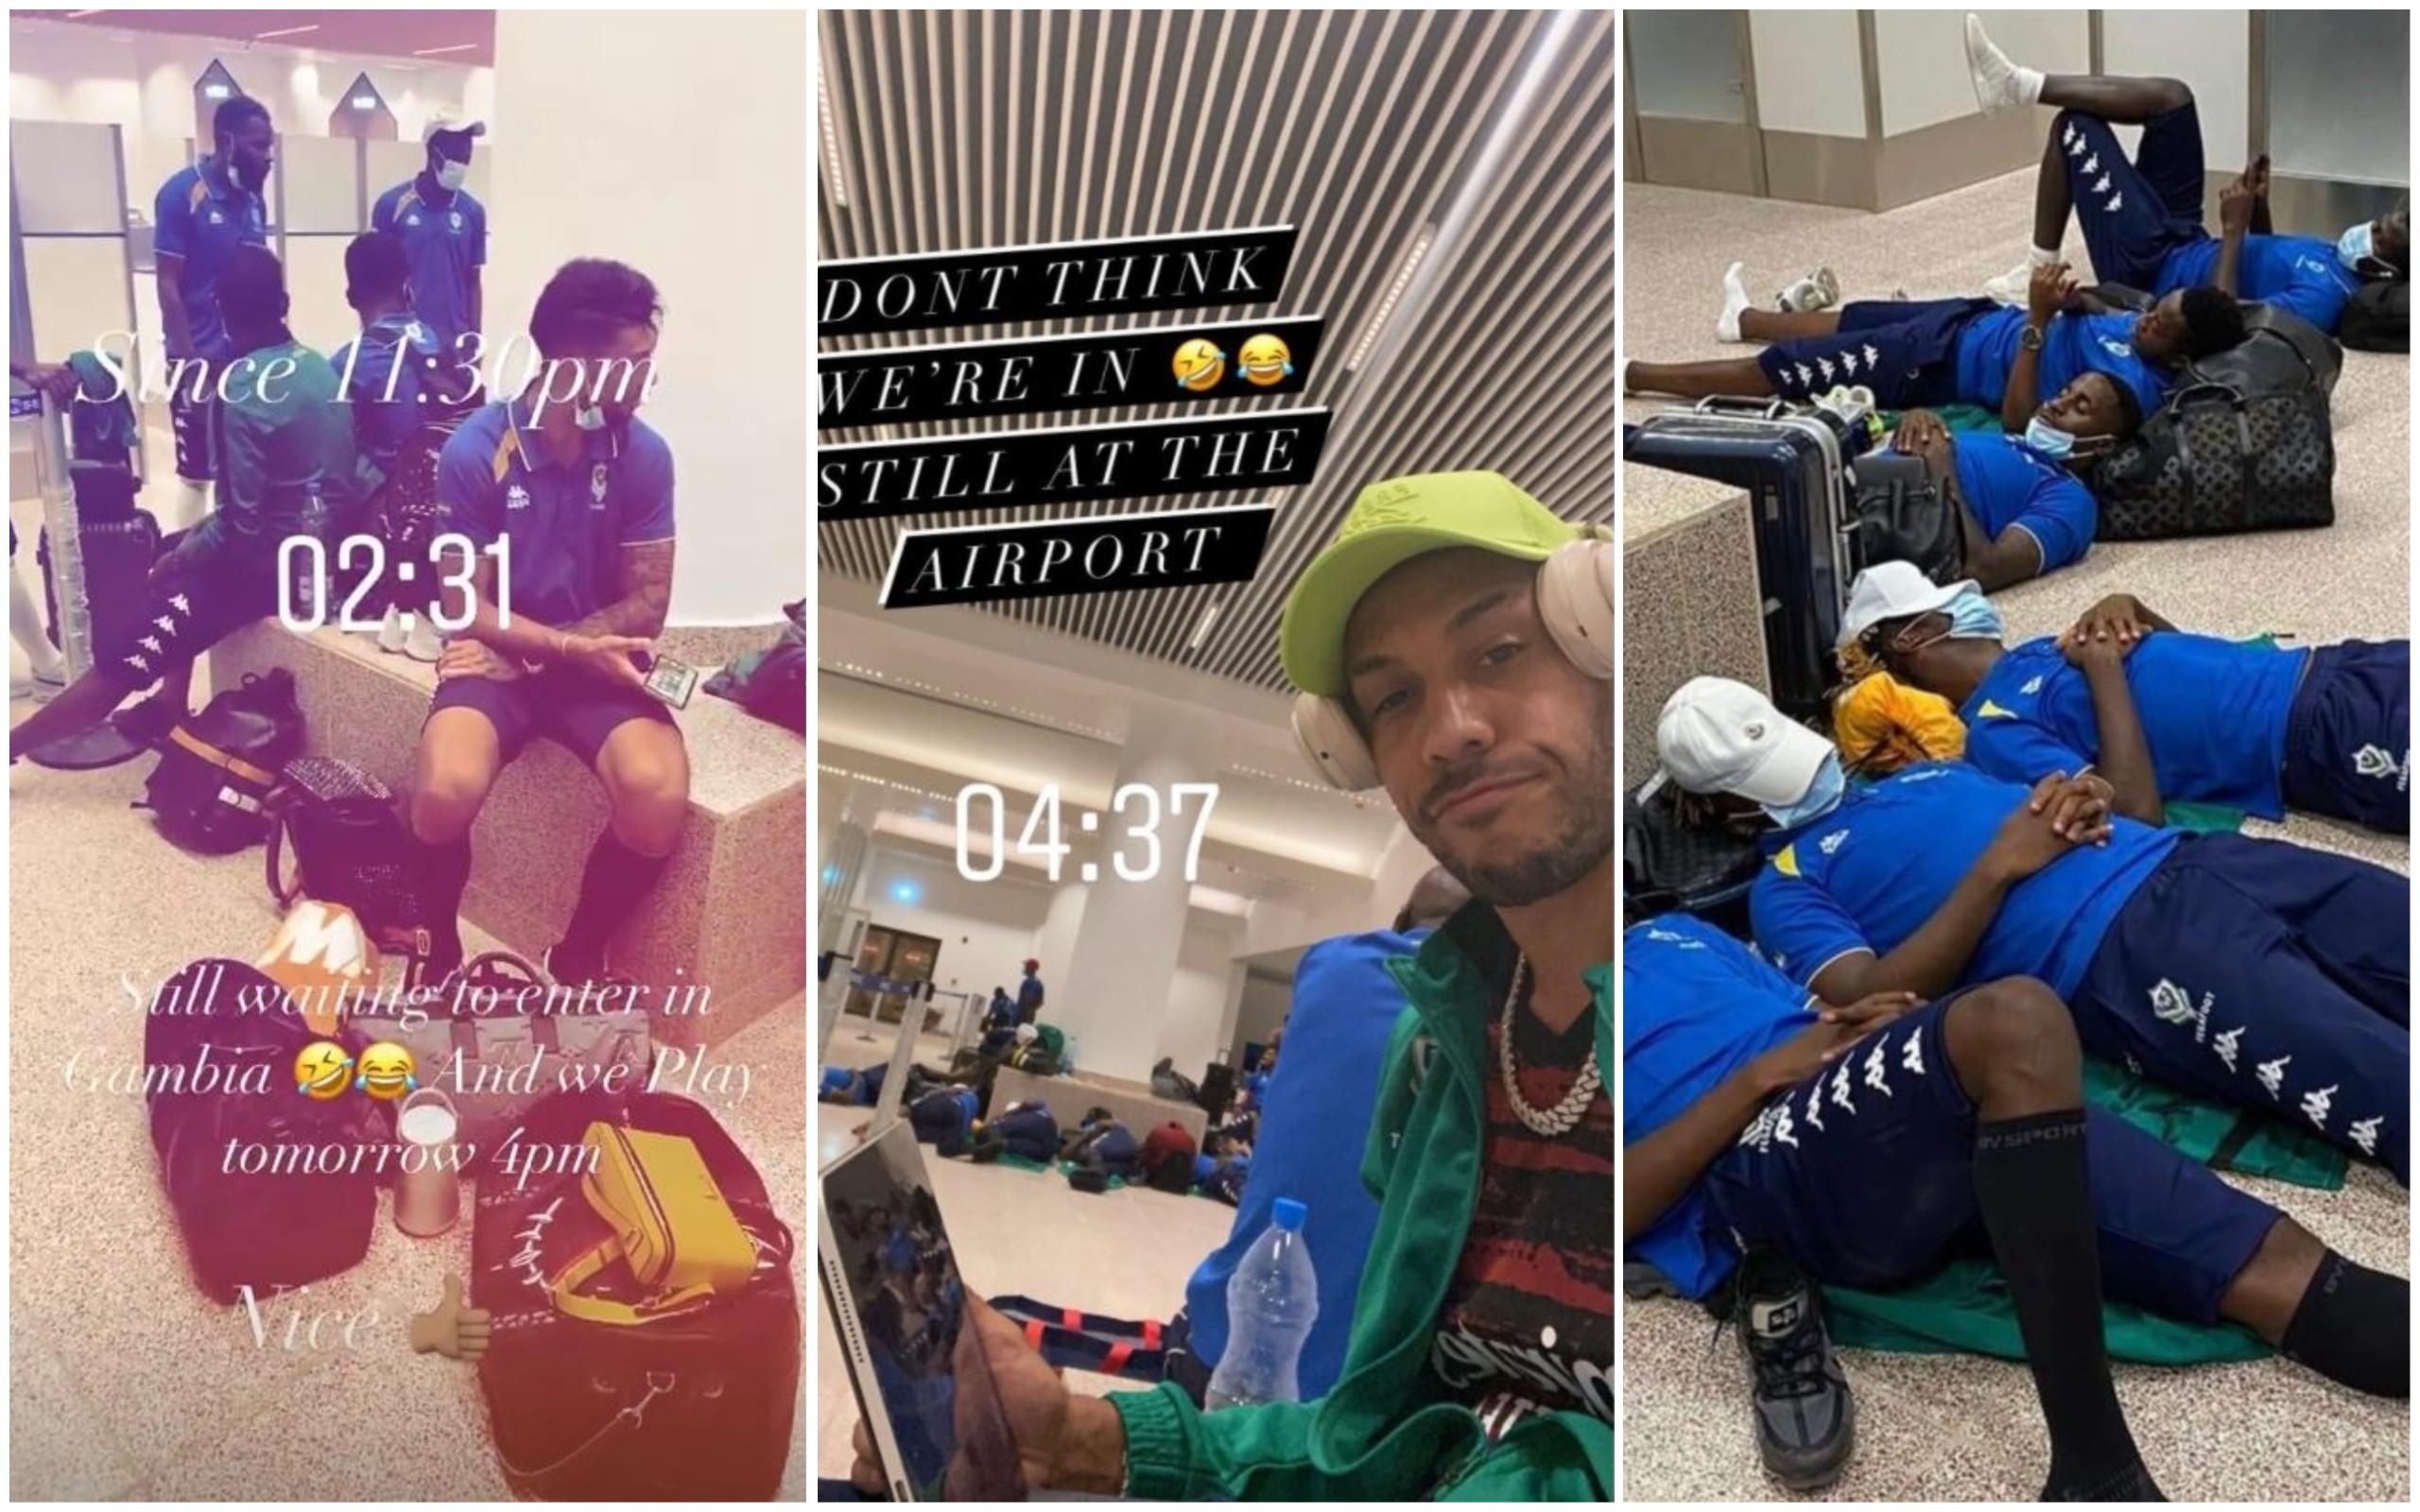 Arsenal captain Pierre-Emerick Aubameyang and his Gabon team-mates were held hostage and forced to spend the night sleeping on the airport floor ahead of an Africa Cup of Nations qualifier against Gambia.